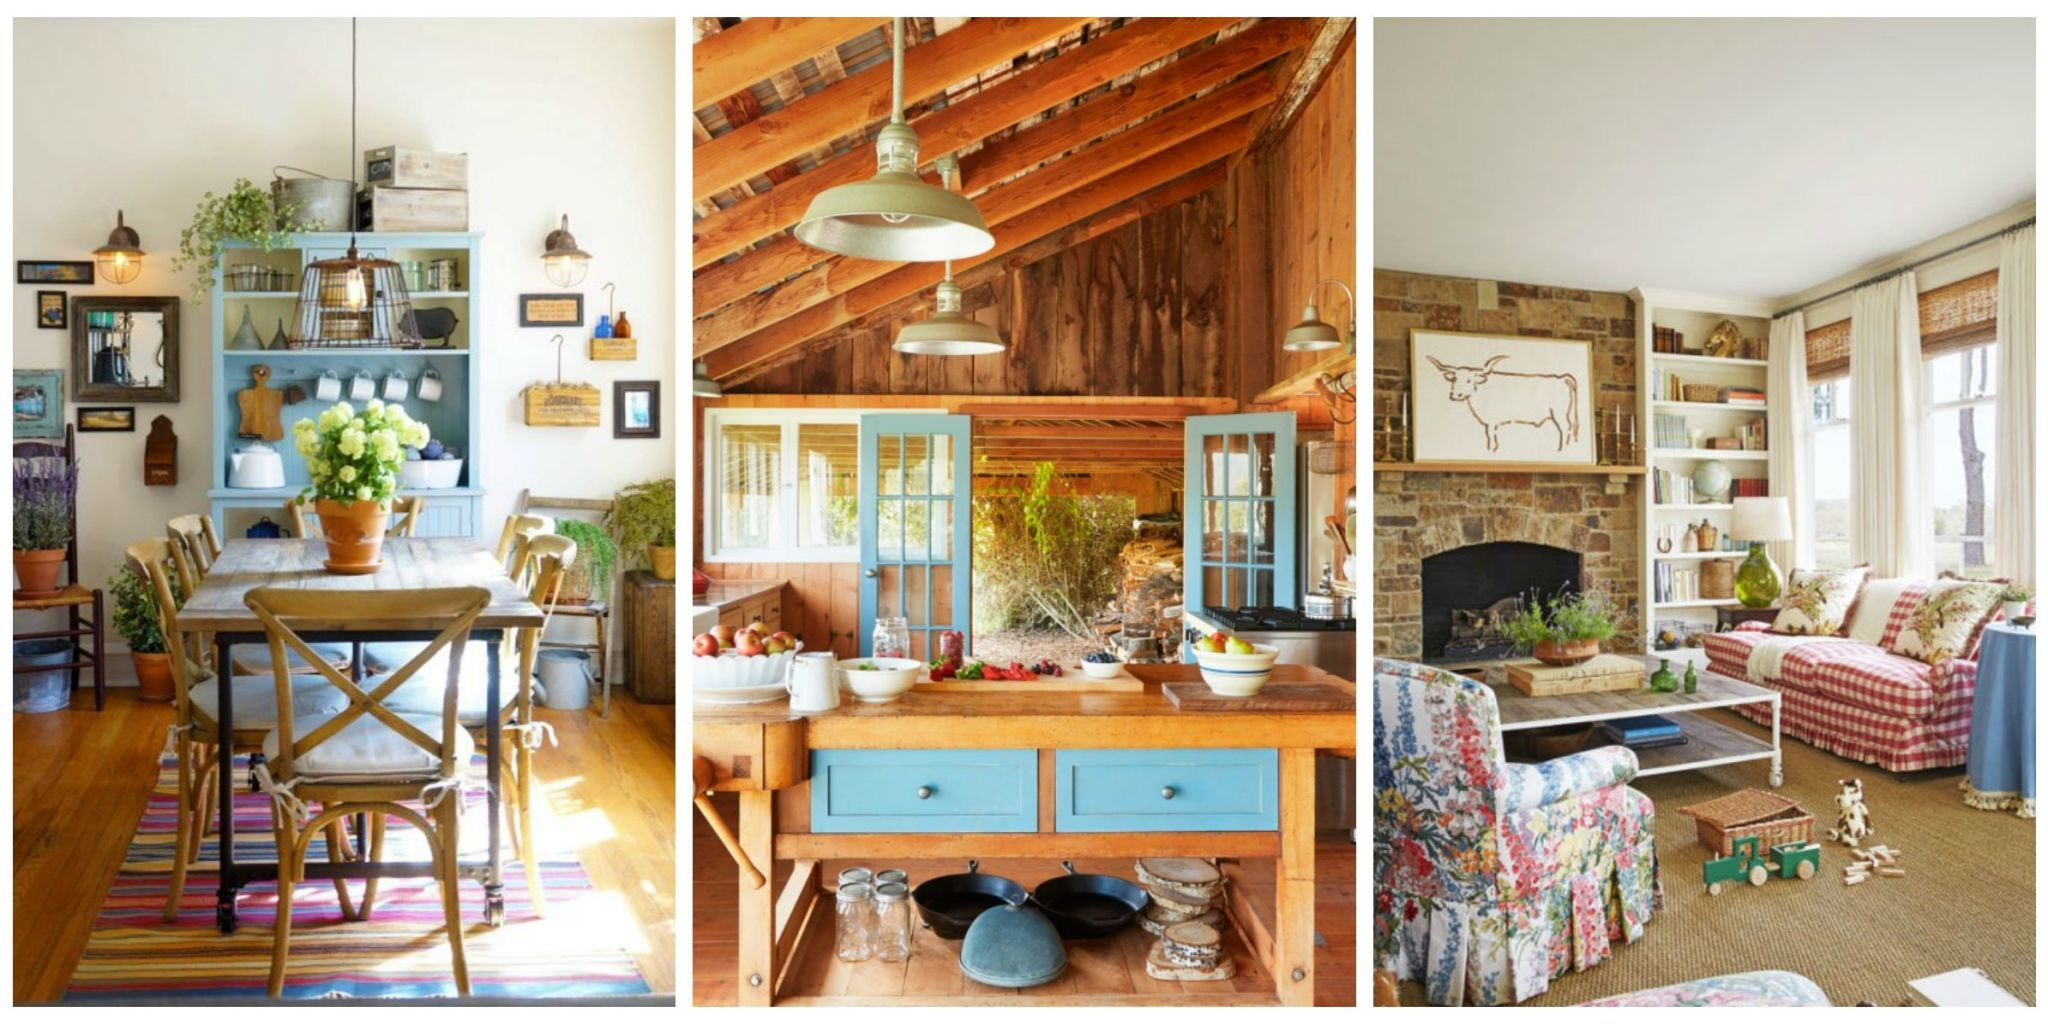 Delightful We Never Tire Of Beautiful Farmhouse Decoru2014from Bedrooms To Kitchens, Take  A Look At These Simple And Rustic Rooms. Want More? Awesome Ideas